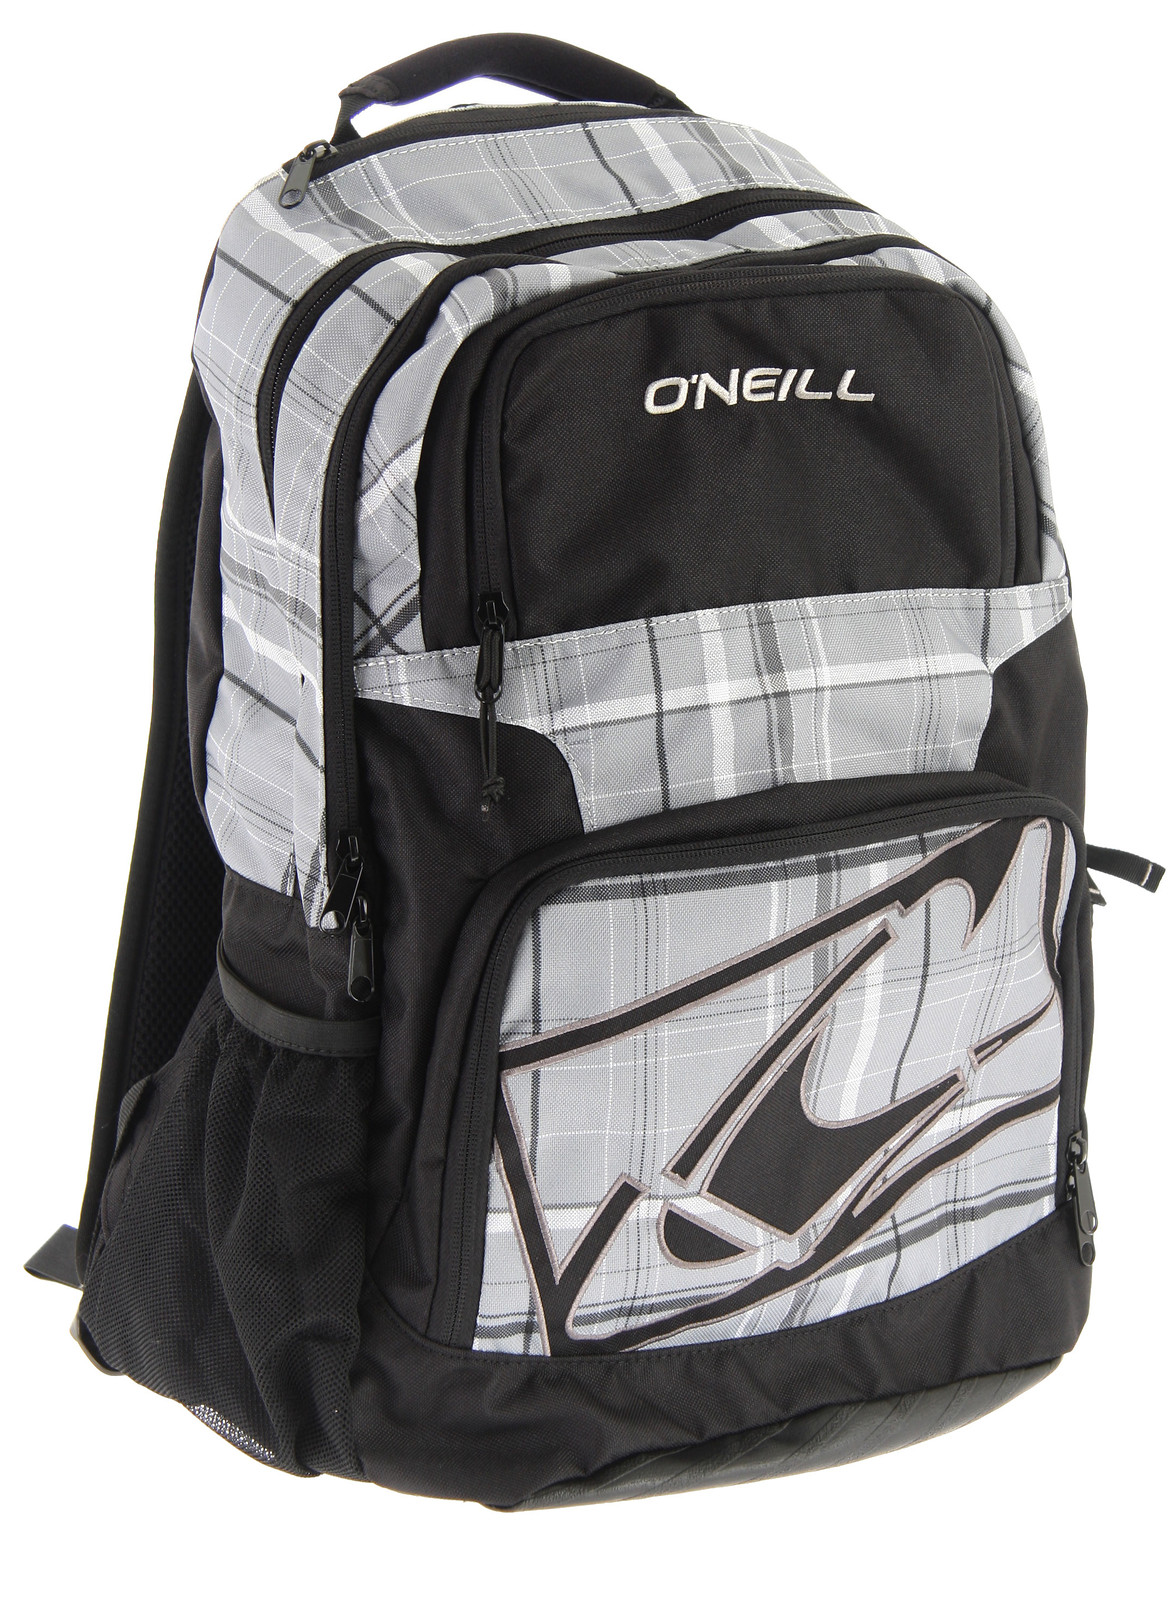 oneill-epic-pack-gryplaid-11.jpg